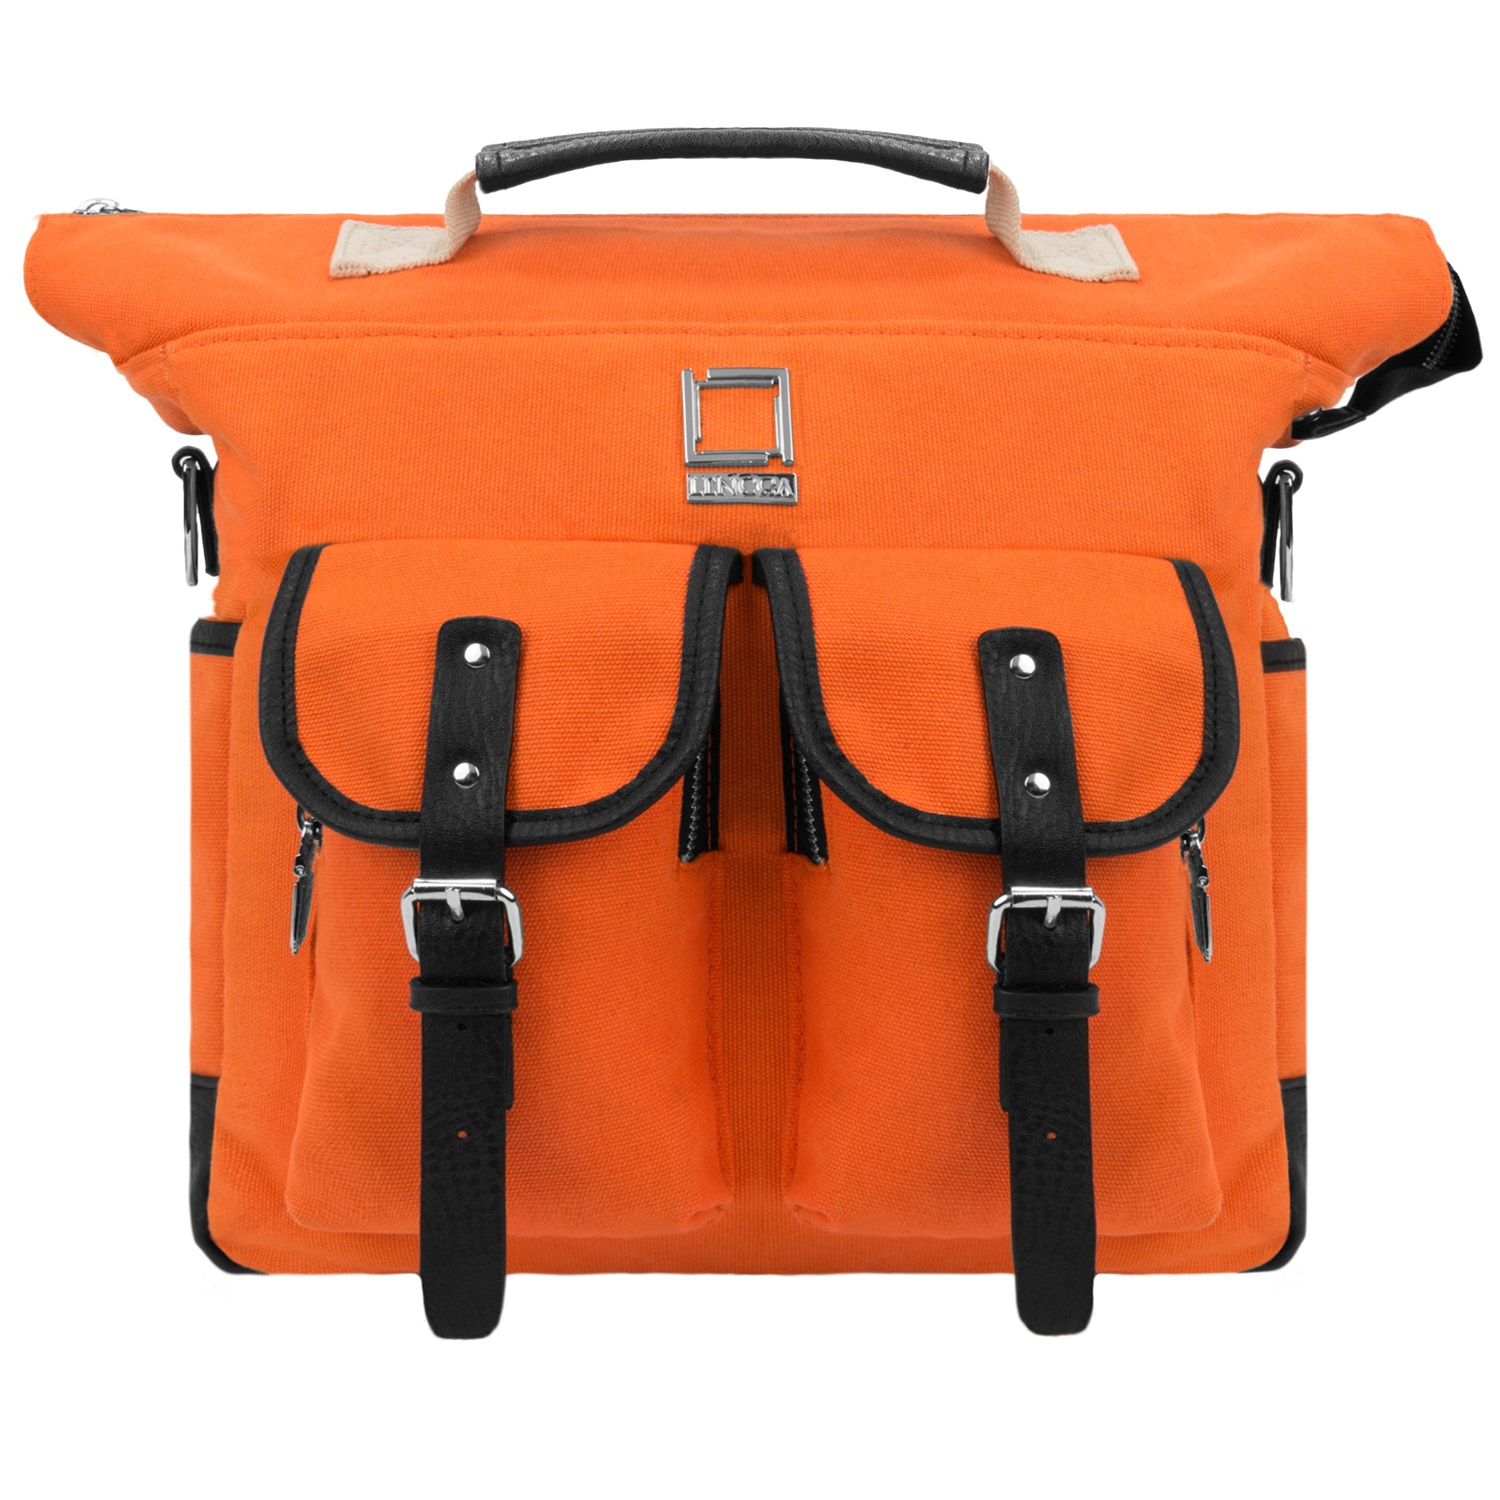 """LENCCA Mini Phlox 3 in 1 Universal Messenger / Backpack / Carrying Bag Fits 10"""", 10.1"""", 11"""", 11.6""""or 12"""" Tablets or Laptops"""